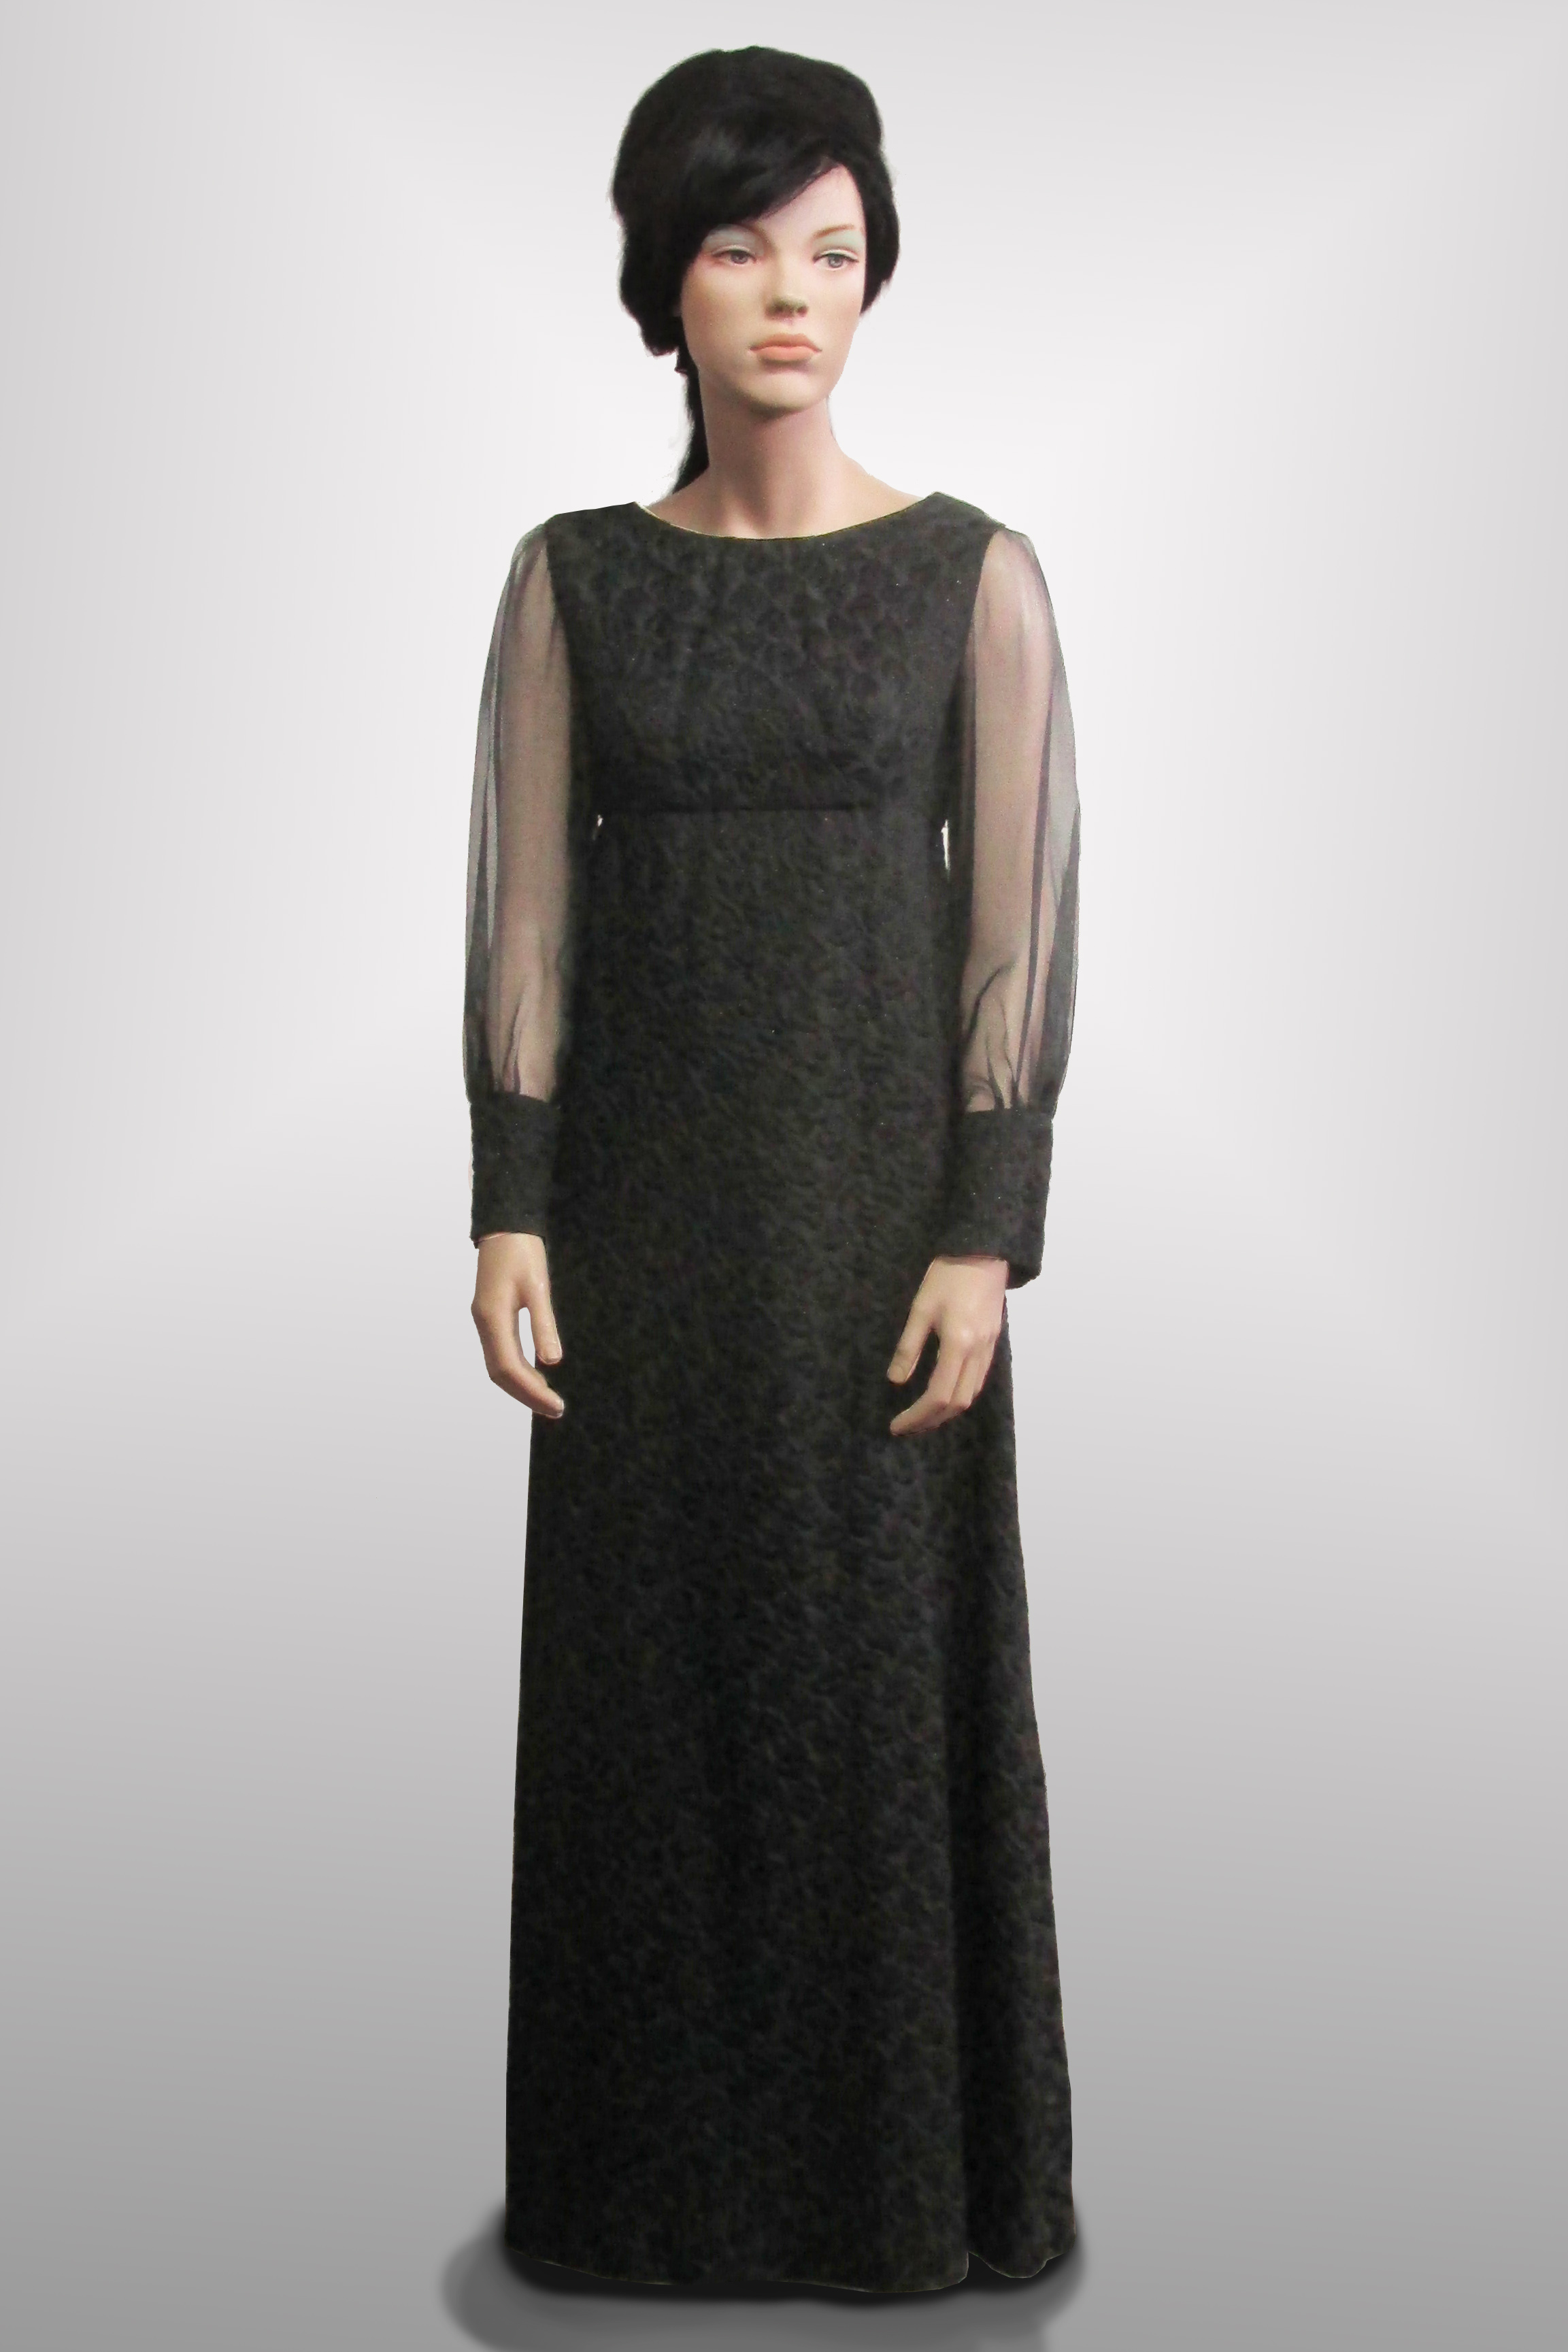 Evening Gown Black with Sheer Sleeves 1960s